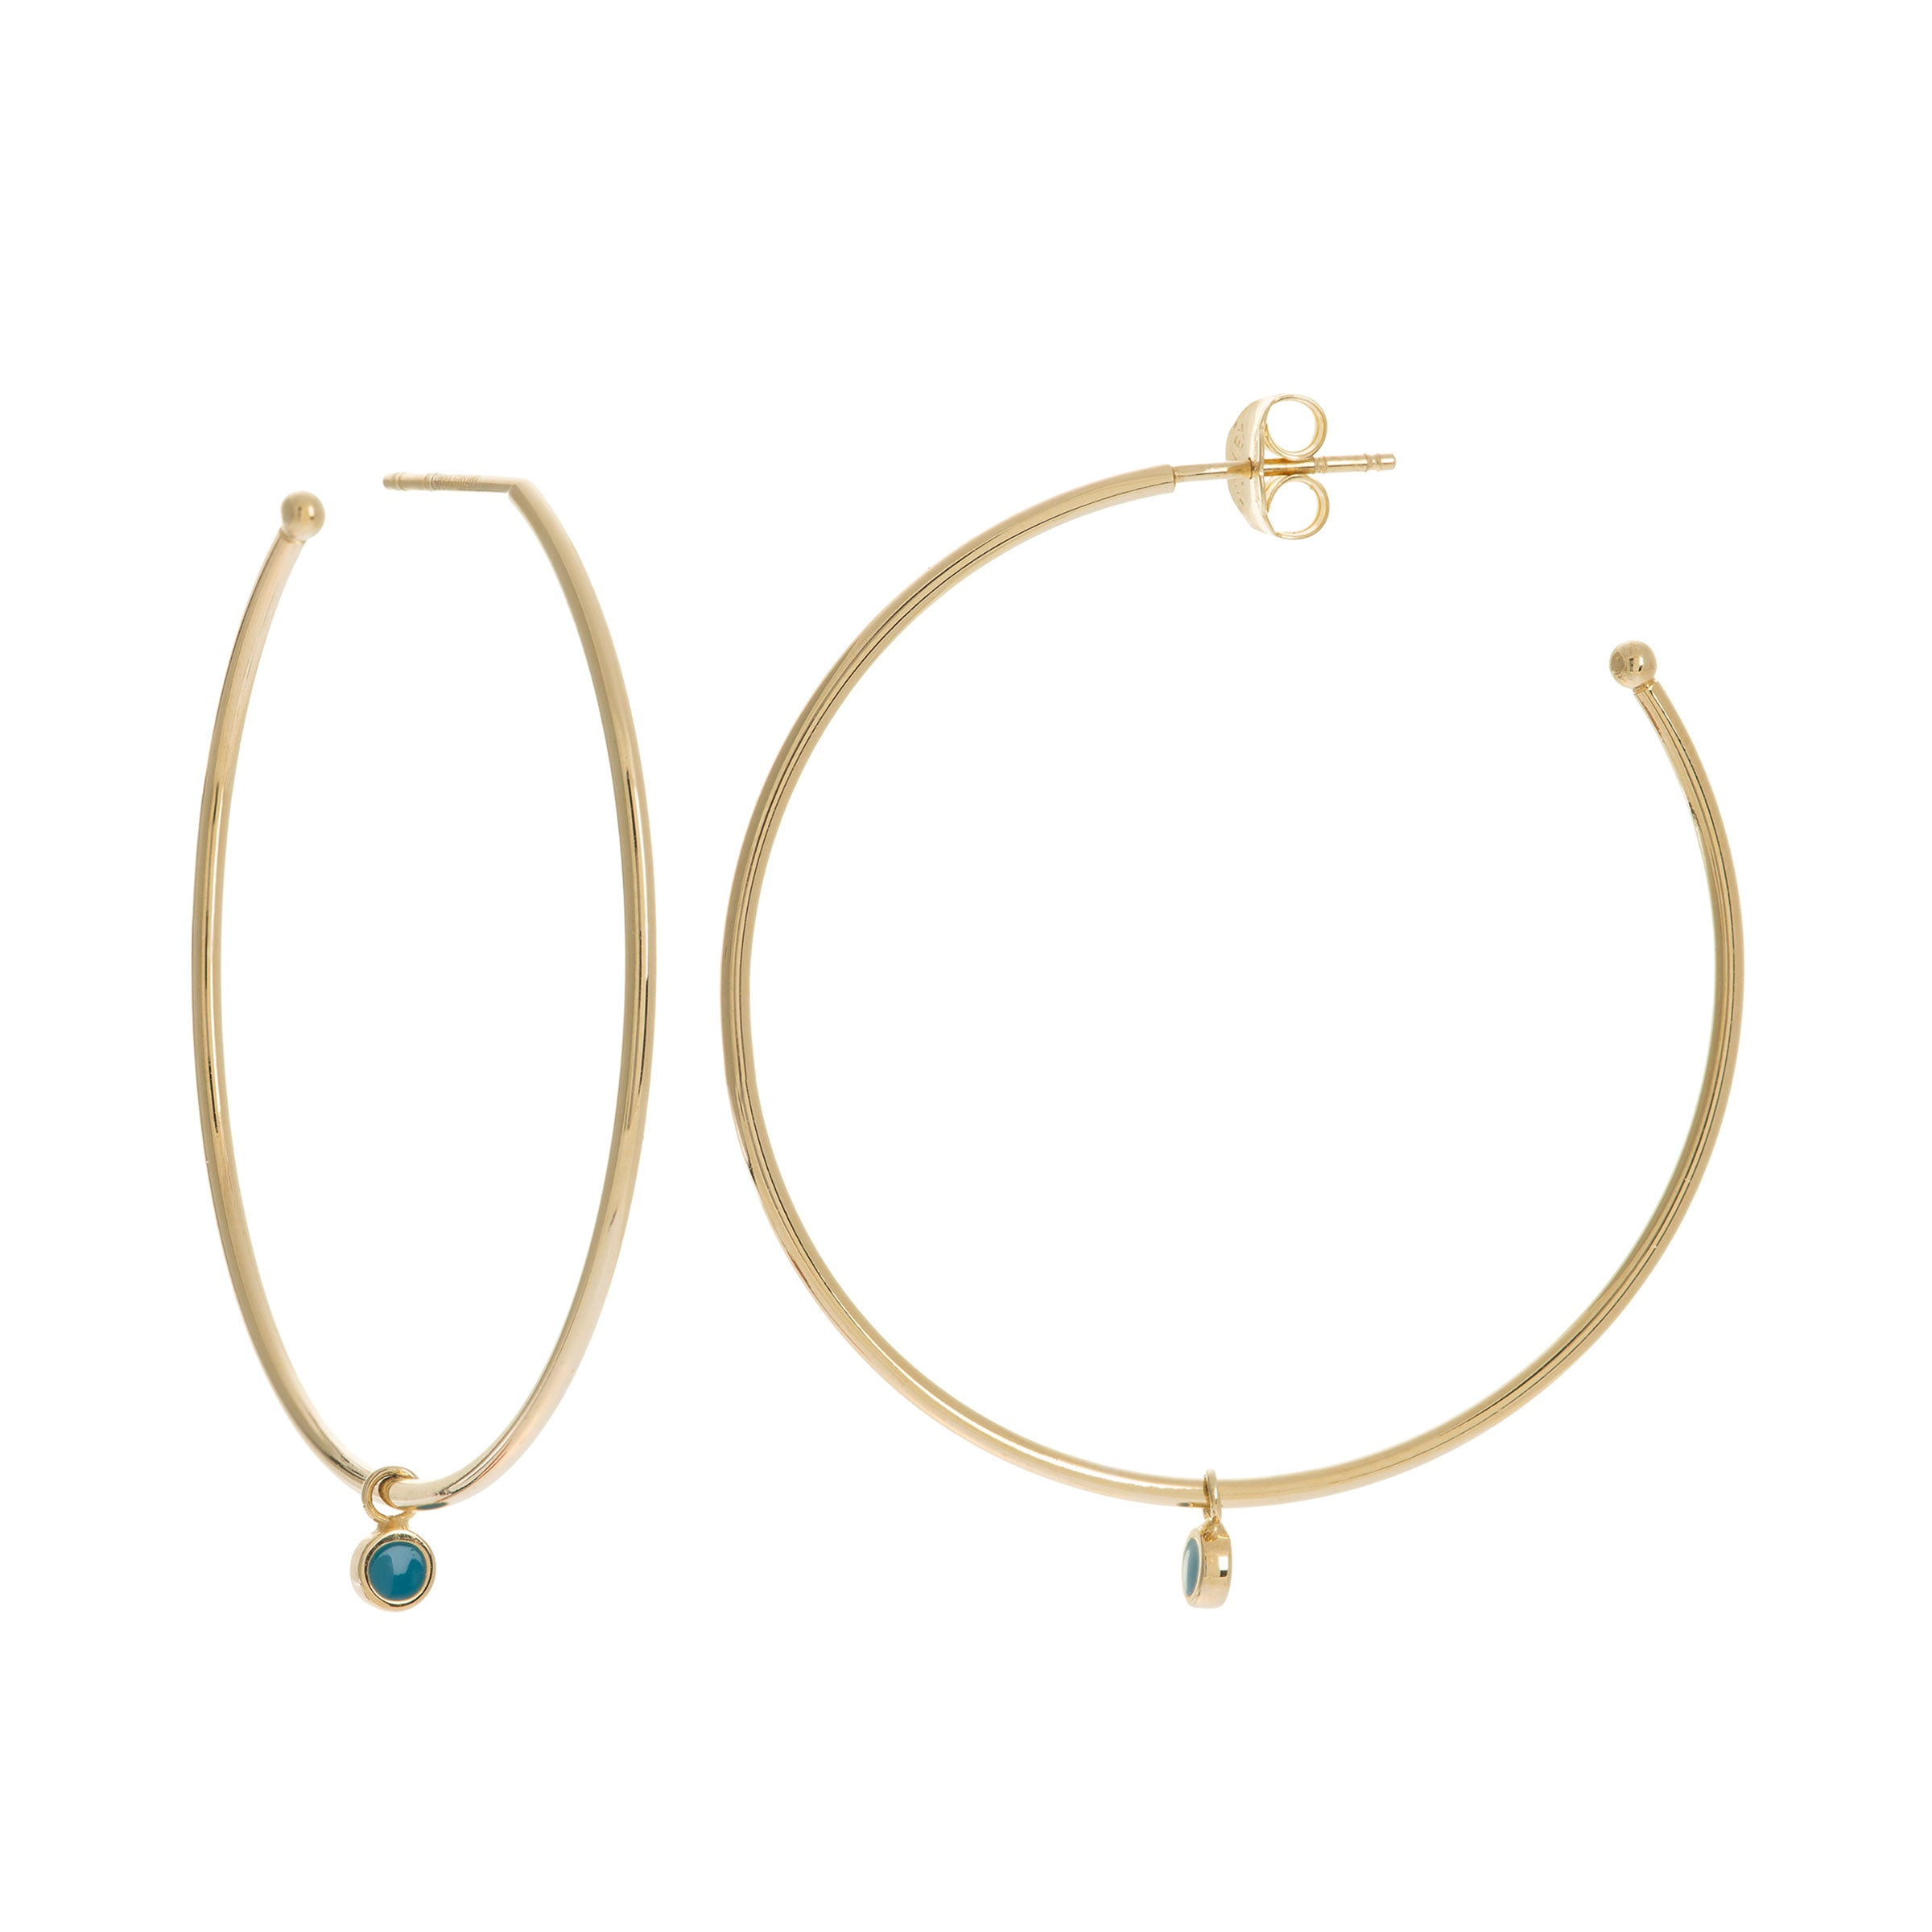 Large Hoop Earrings with Blue Enamel Dangle, 1.60 Inches, 14K Yellow Gold